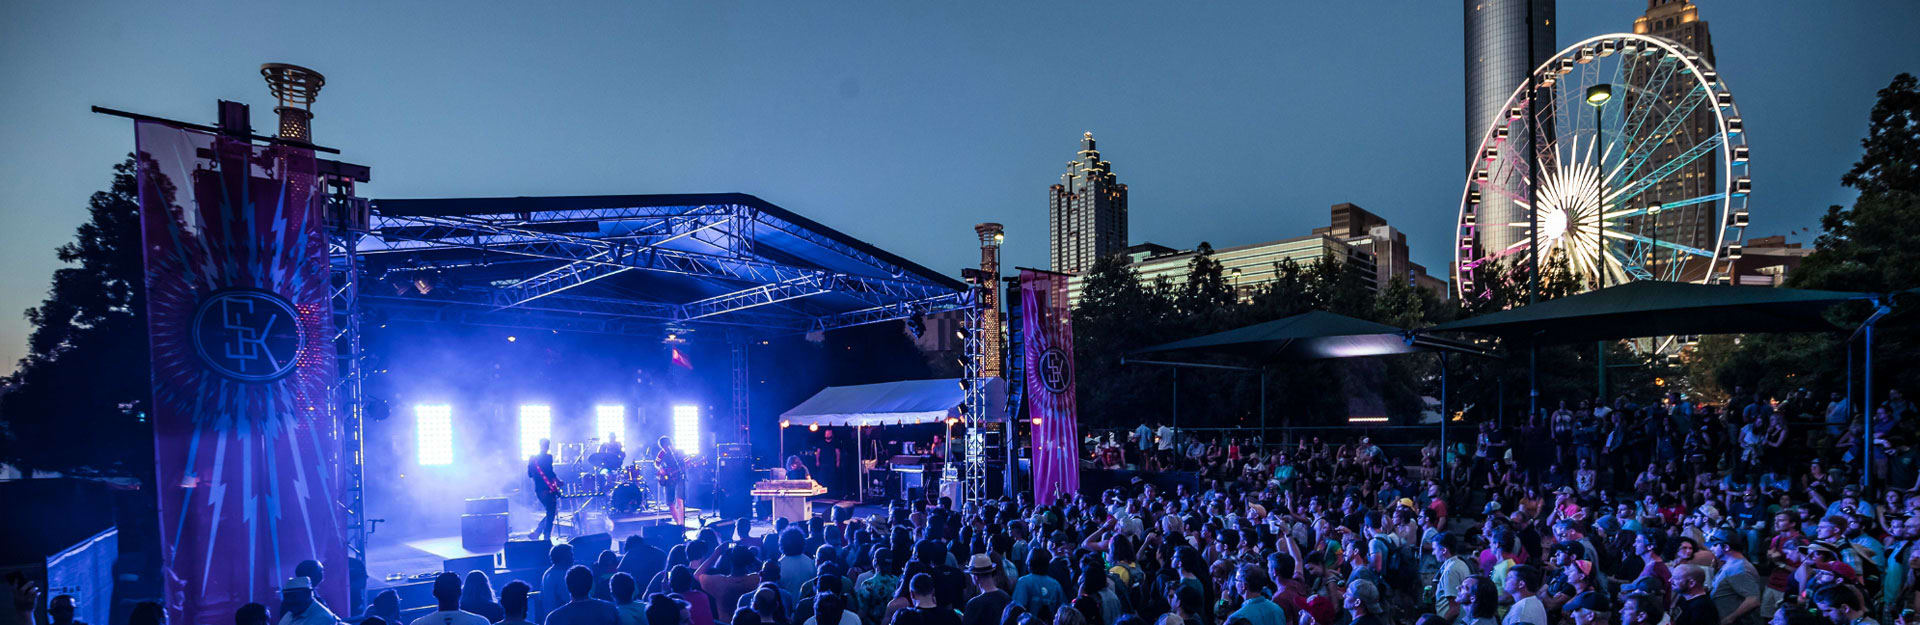 Explore Atlanta Events, Things to Do This Weekend, Festivals & More